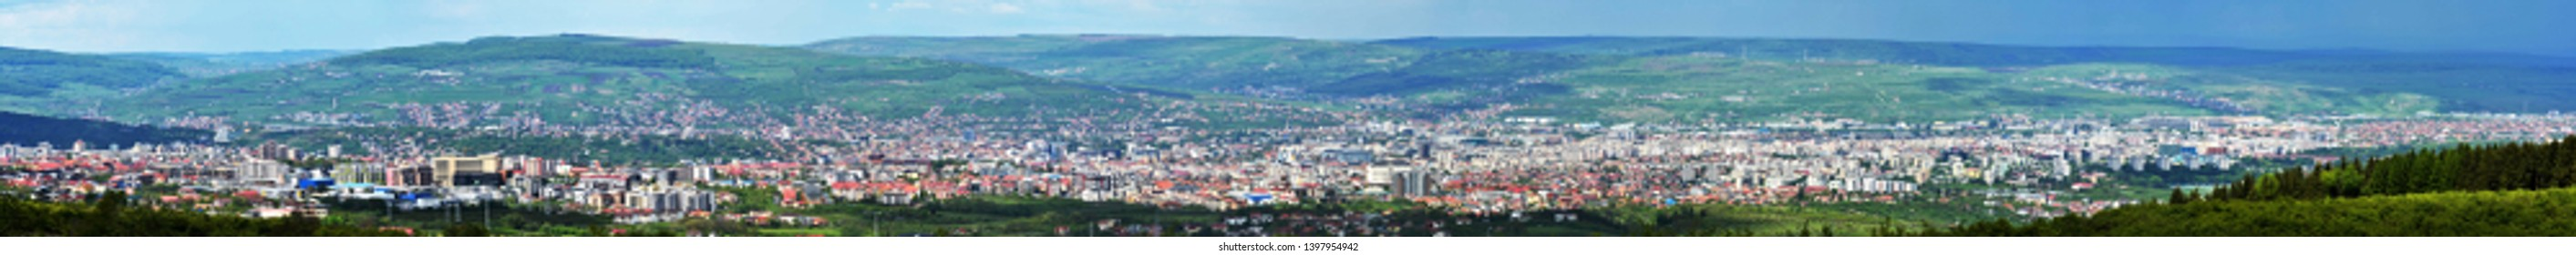 The city of Cluj Napoca from Cluj county - Romania 11.May.2019 It is a city located in the center of the Transylvanian Plateau